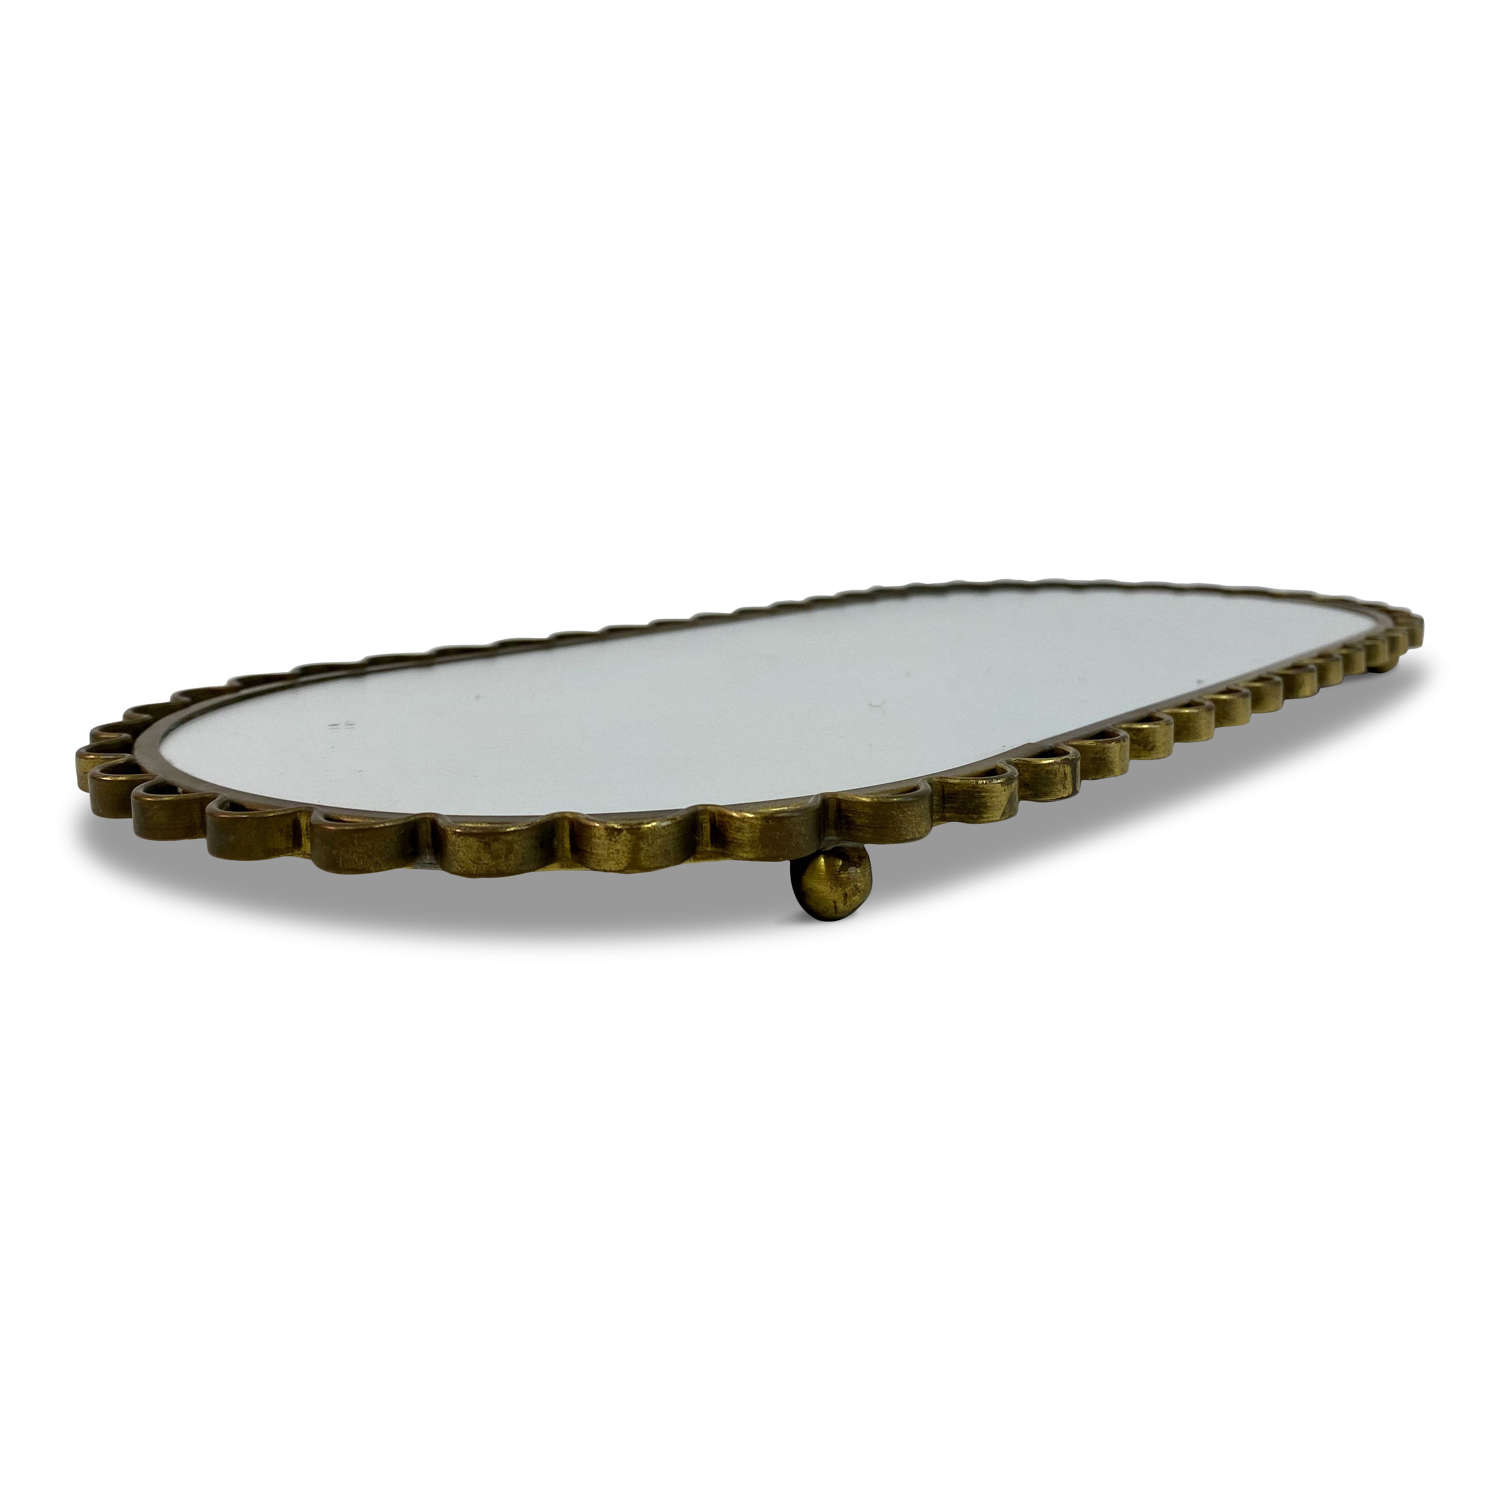 1950s Swedish Brass Mirrored Tray or Plateau